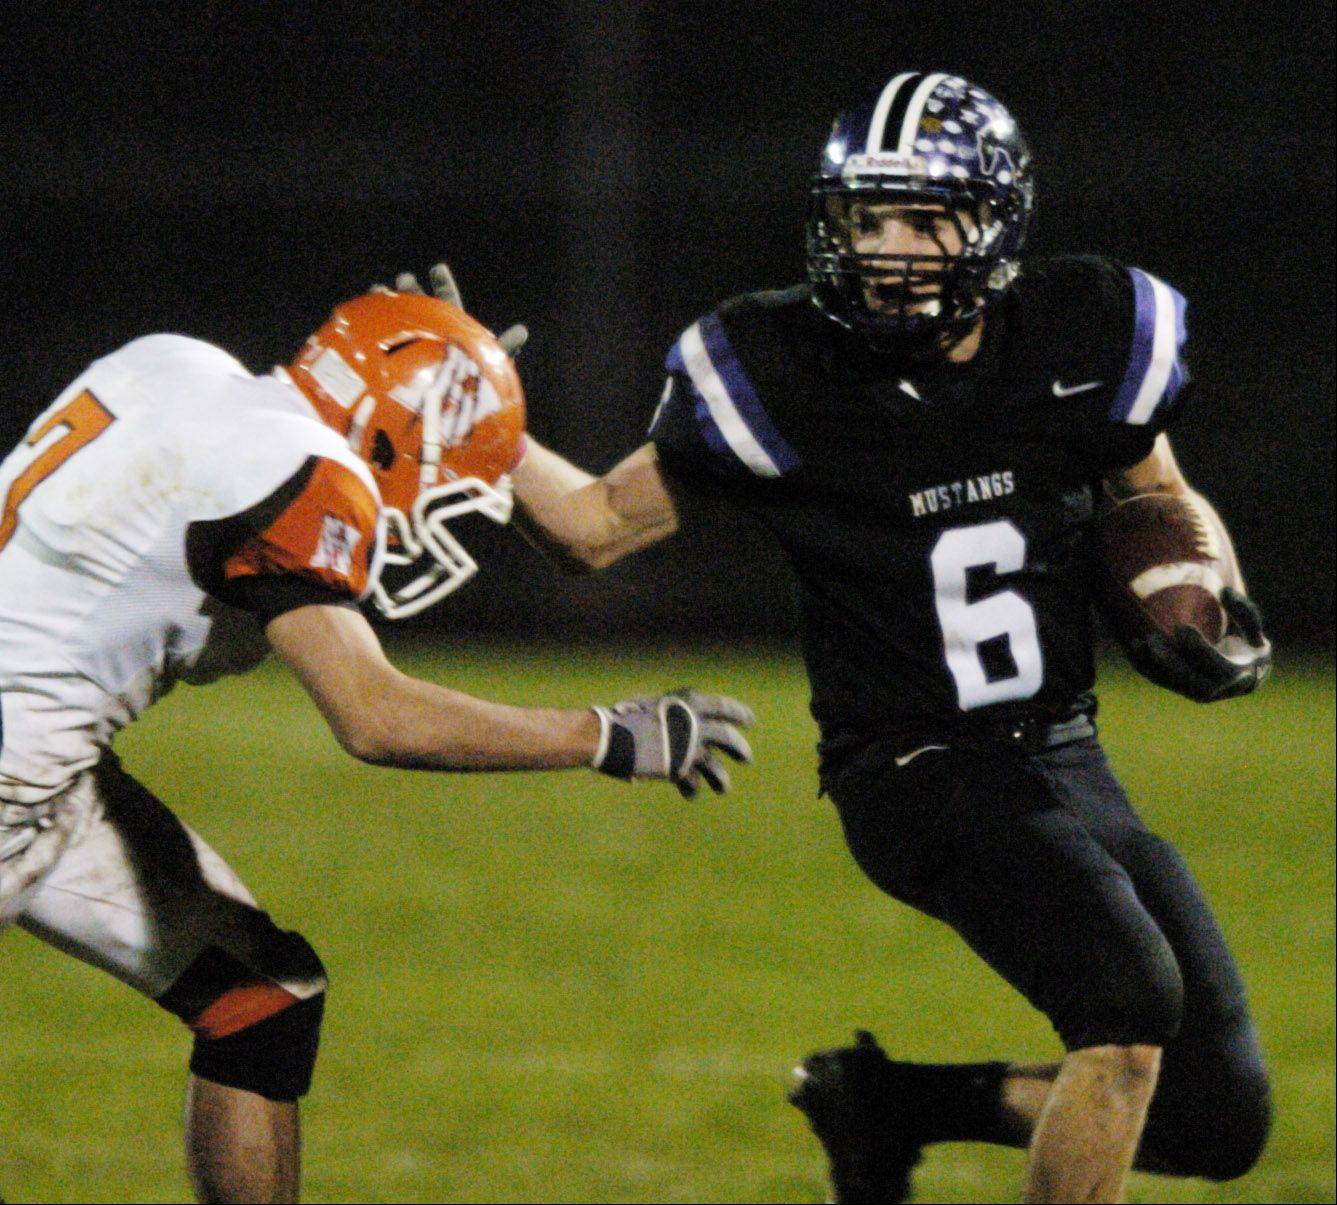 Week 9- Derek Heer of Rolling Meadows tries to get past Joe Rodgers of Hersey.